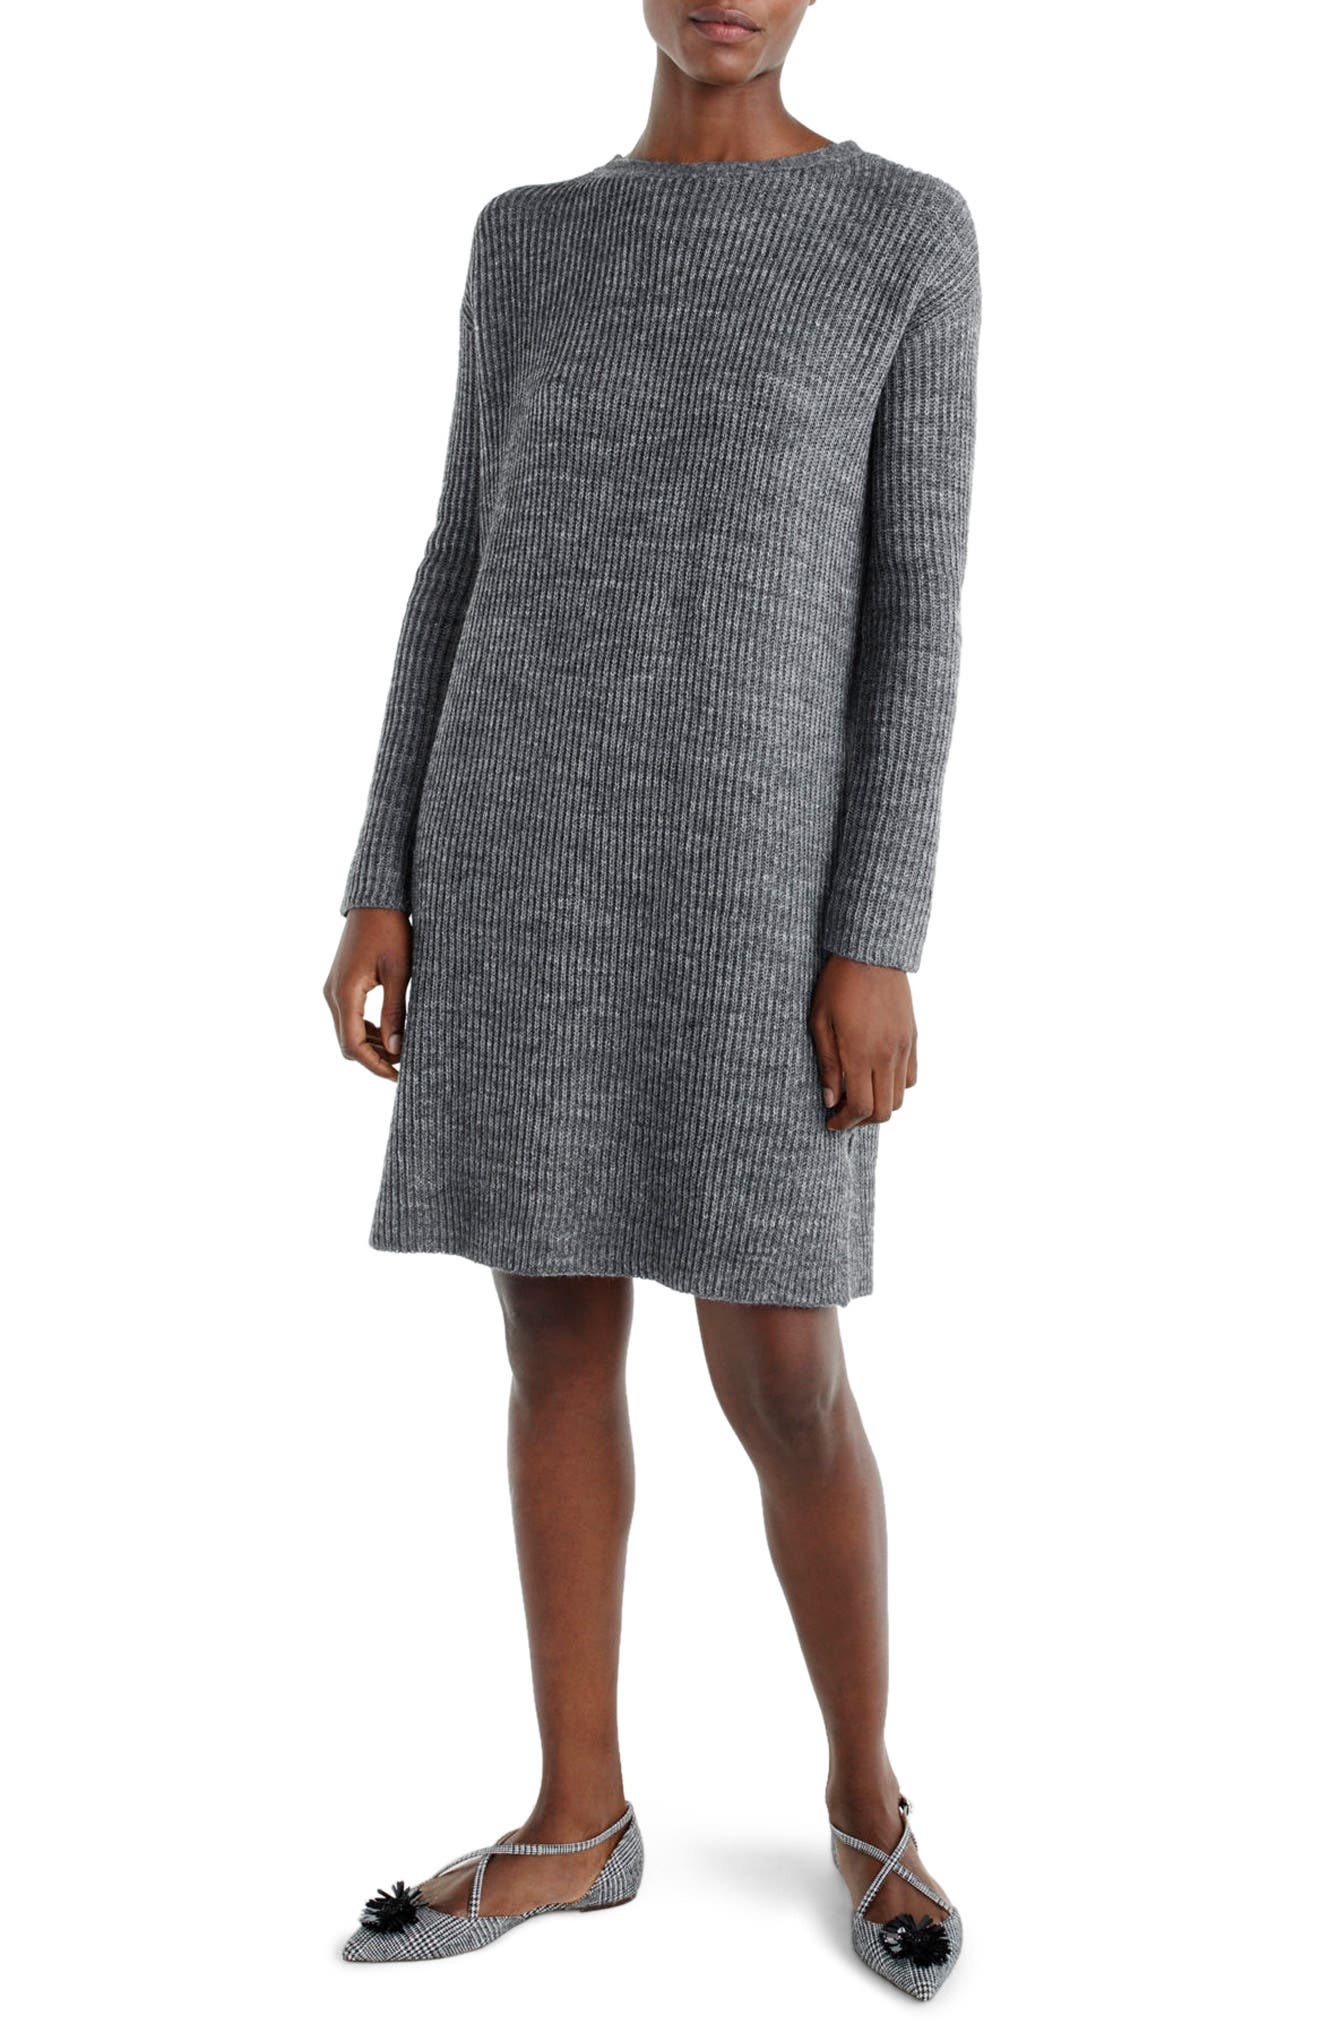 Main Image - J.Crew Bow Tie Open Back Sweater Dress